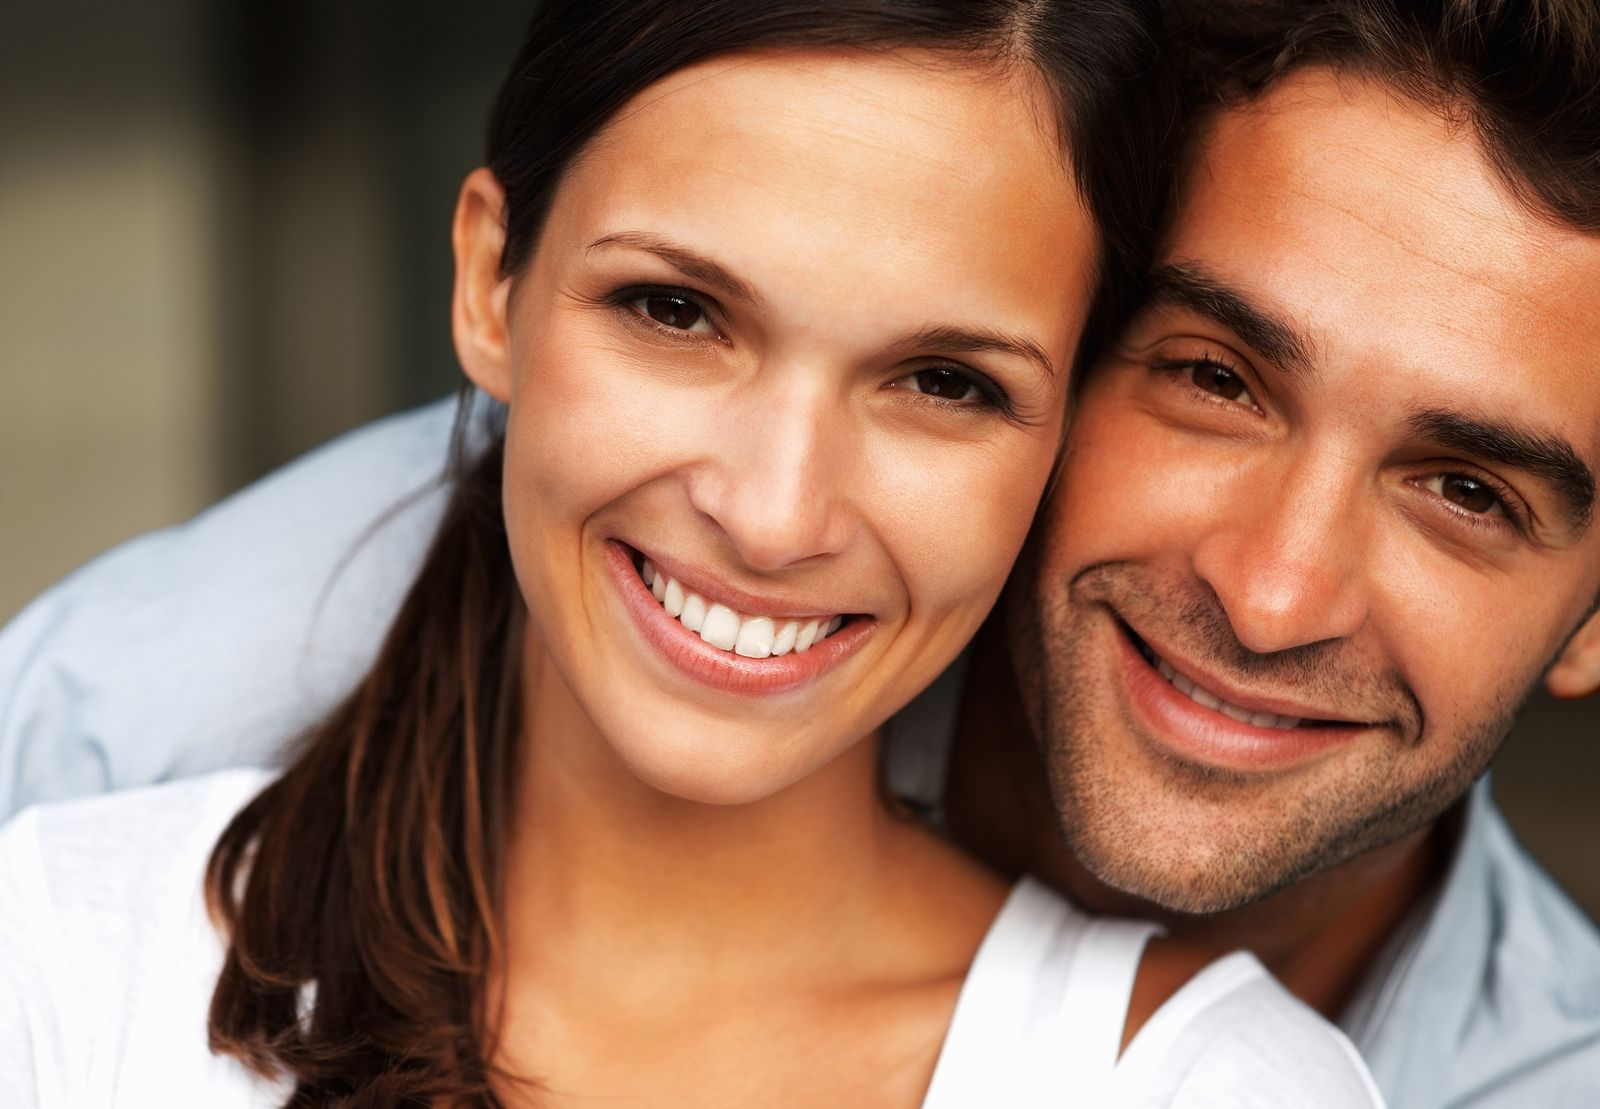 What are the Most Common Frequently Asked Questions about Porcelain Veneers?